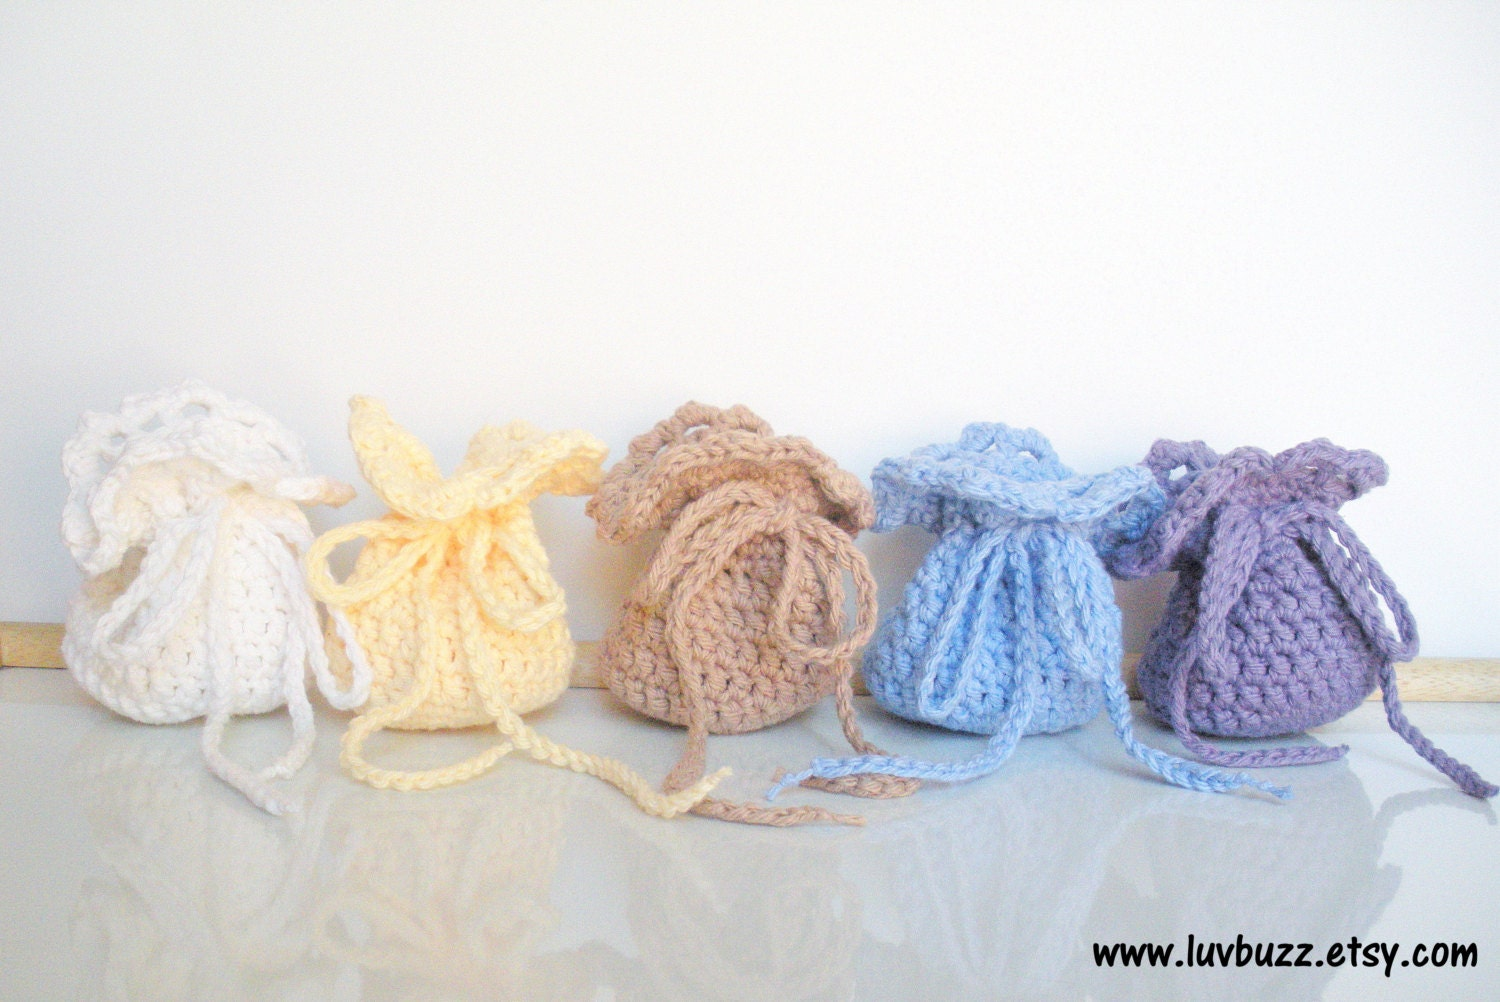 Knitted Wedding Gifts: Crochet Wedding Favor Bags Set Of 20 Or More Party By Luvbuzz